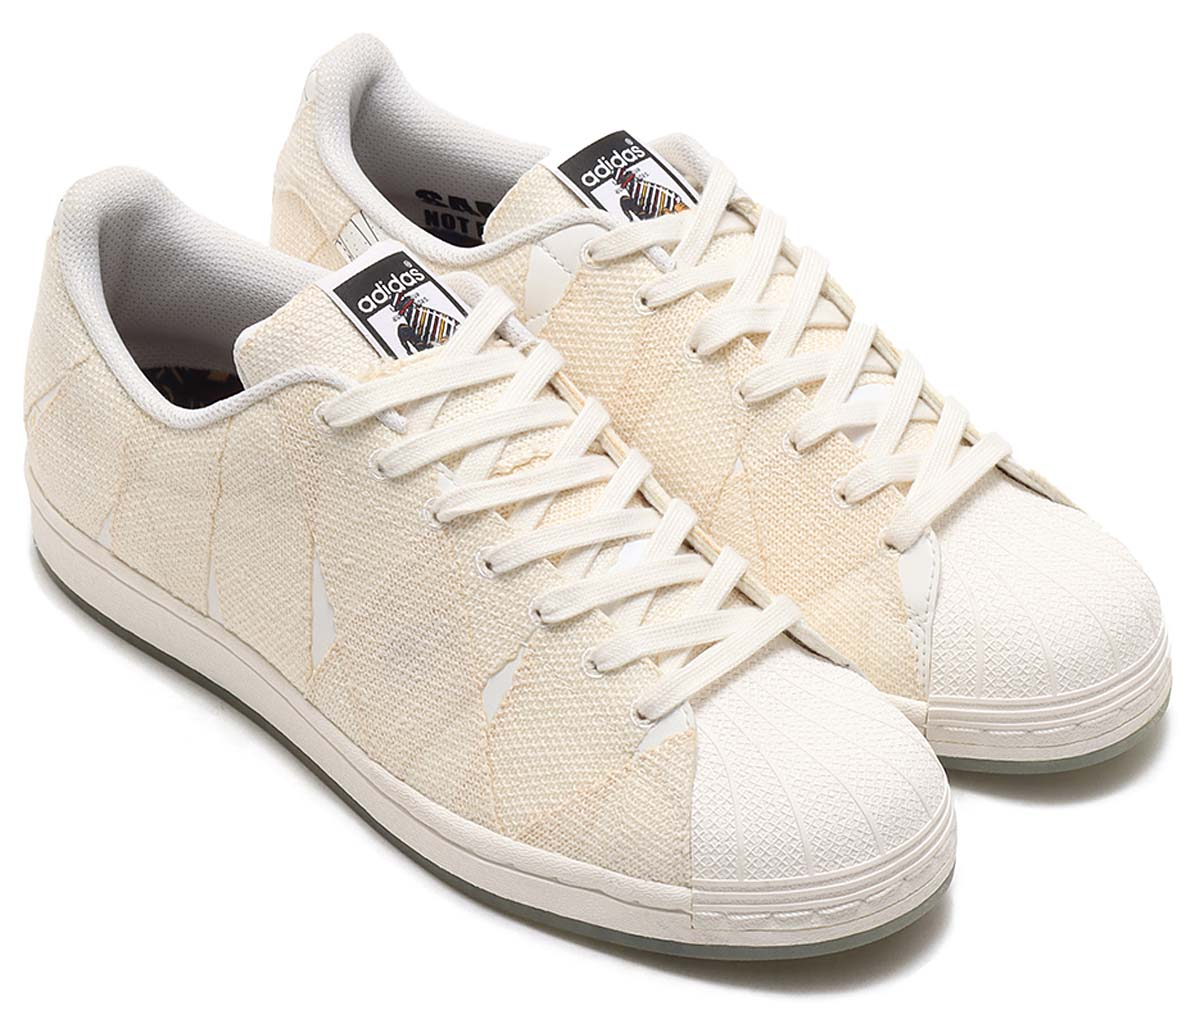 adidas SUPERSTAR 50 CLN MUMMY CORE WHITE / FOOTWEAR WHITE / GOLD METALLIC G55618 アディダス スーパースター 50 ミイラ男 ホワイト/ゴールド